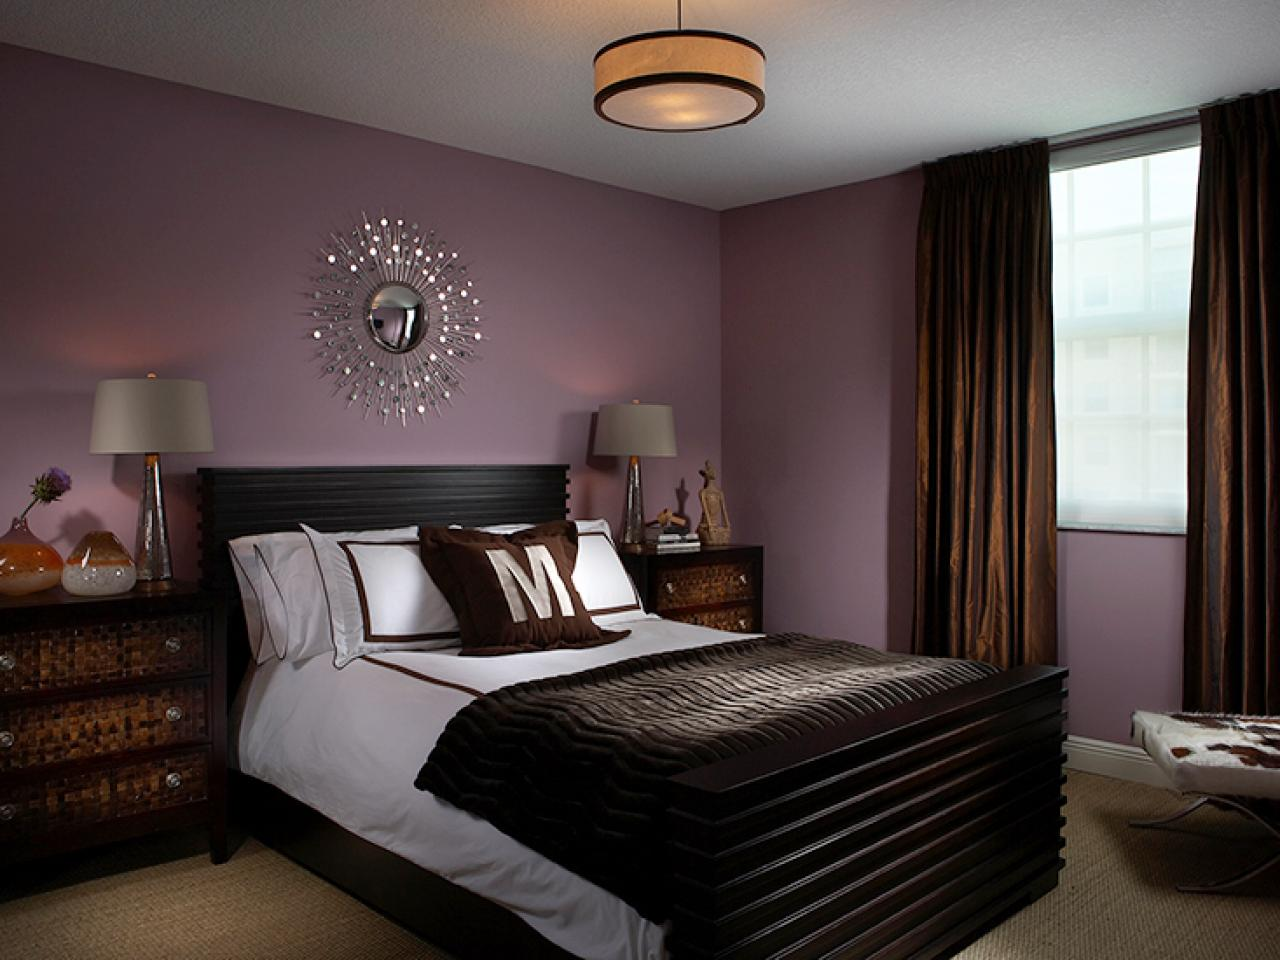 dp_pubillones-purple-brown-transitional-bedroom_s4x3-jpg-rend-hgtvcom-1280-960